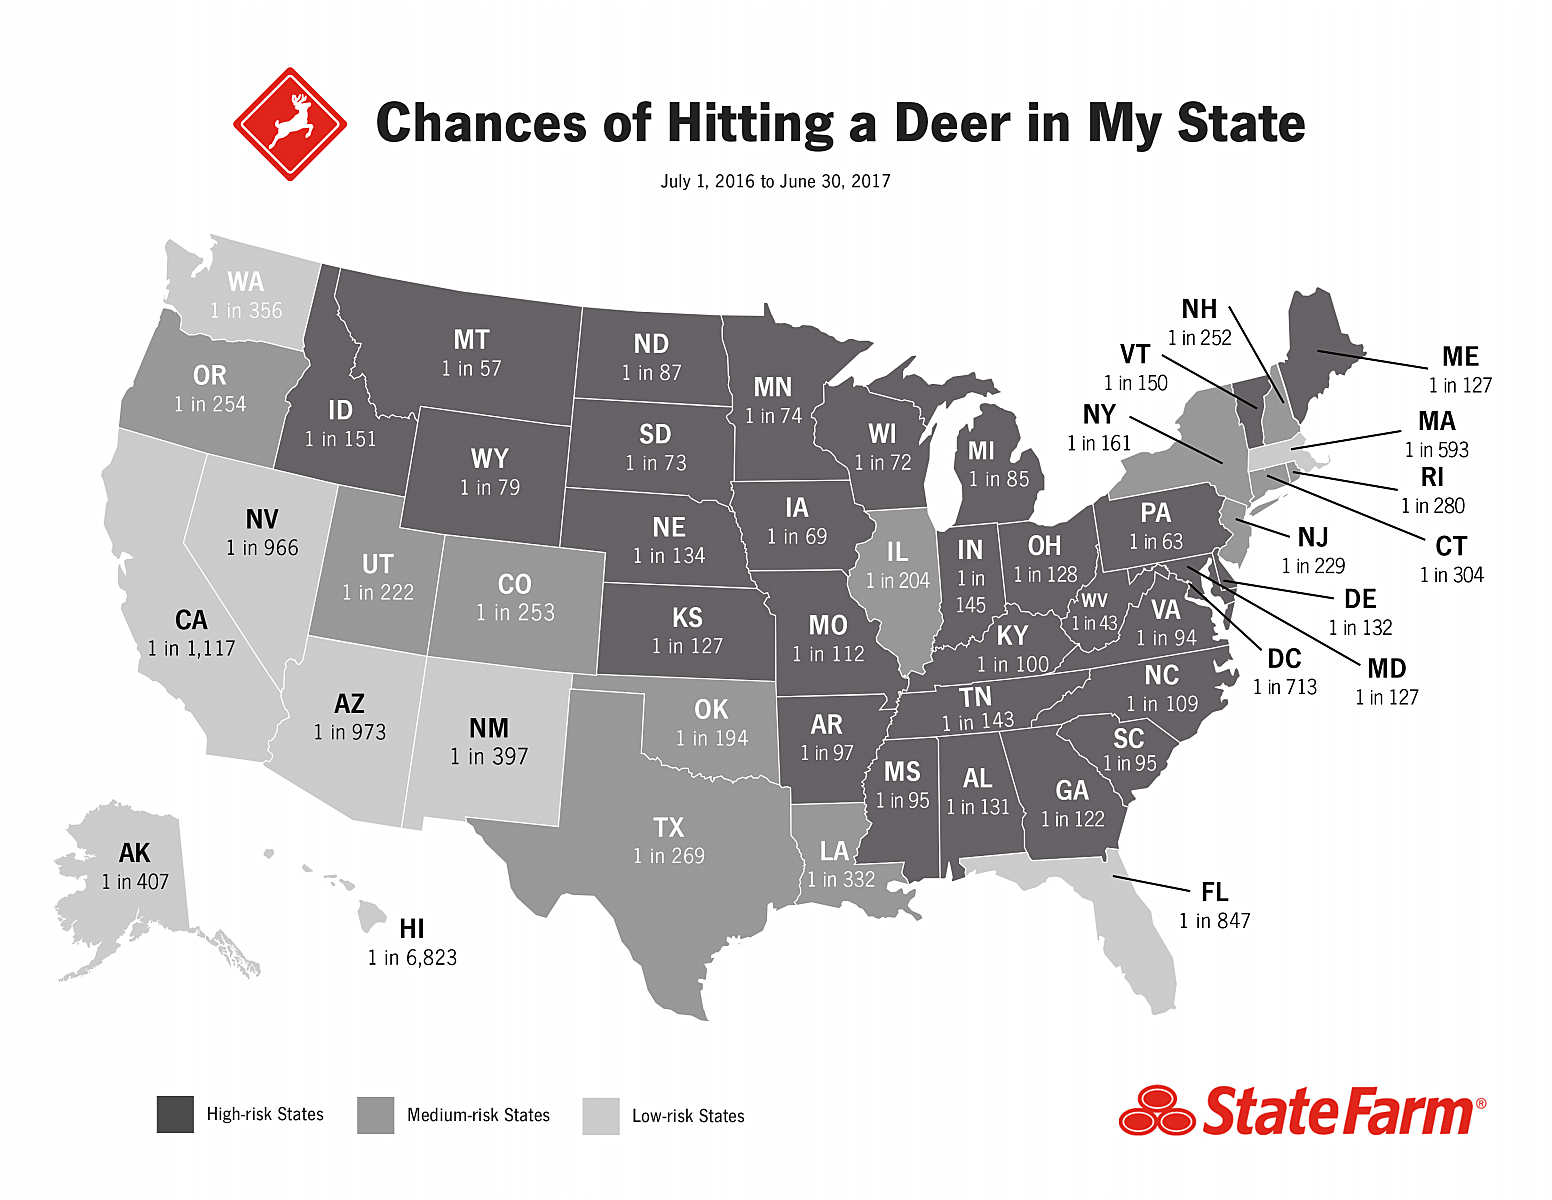 Your Chances of Hitting a Deer by State: Michigan in the Top 10